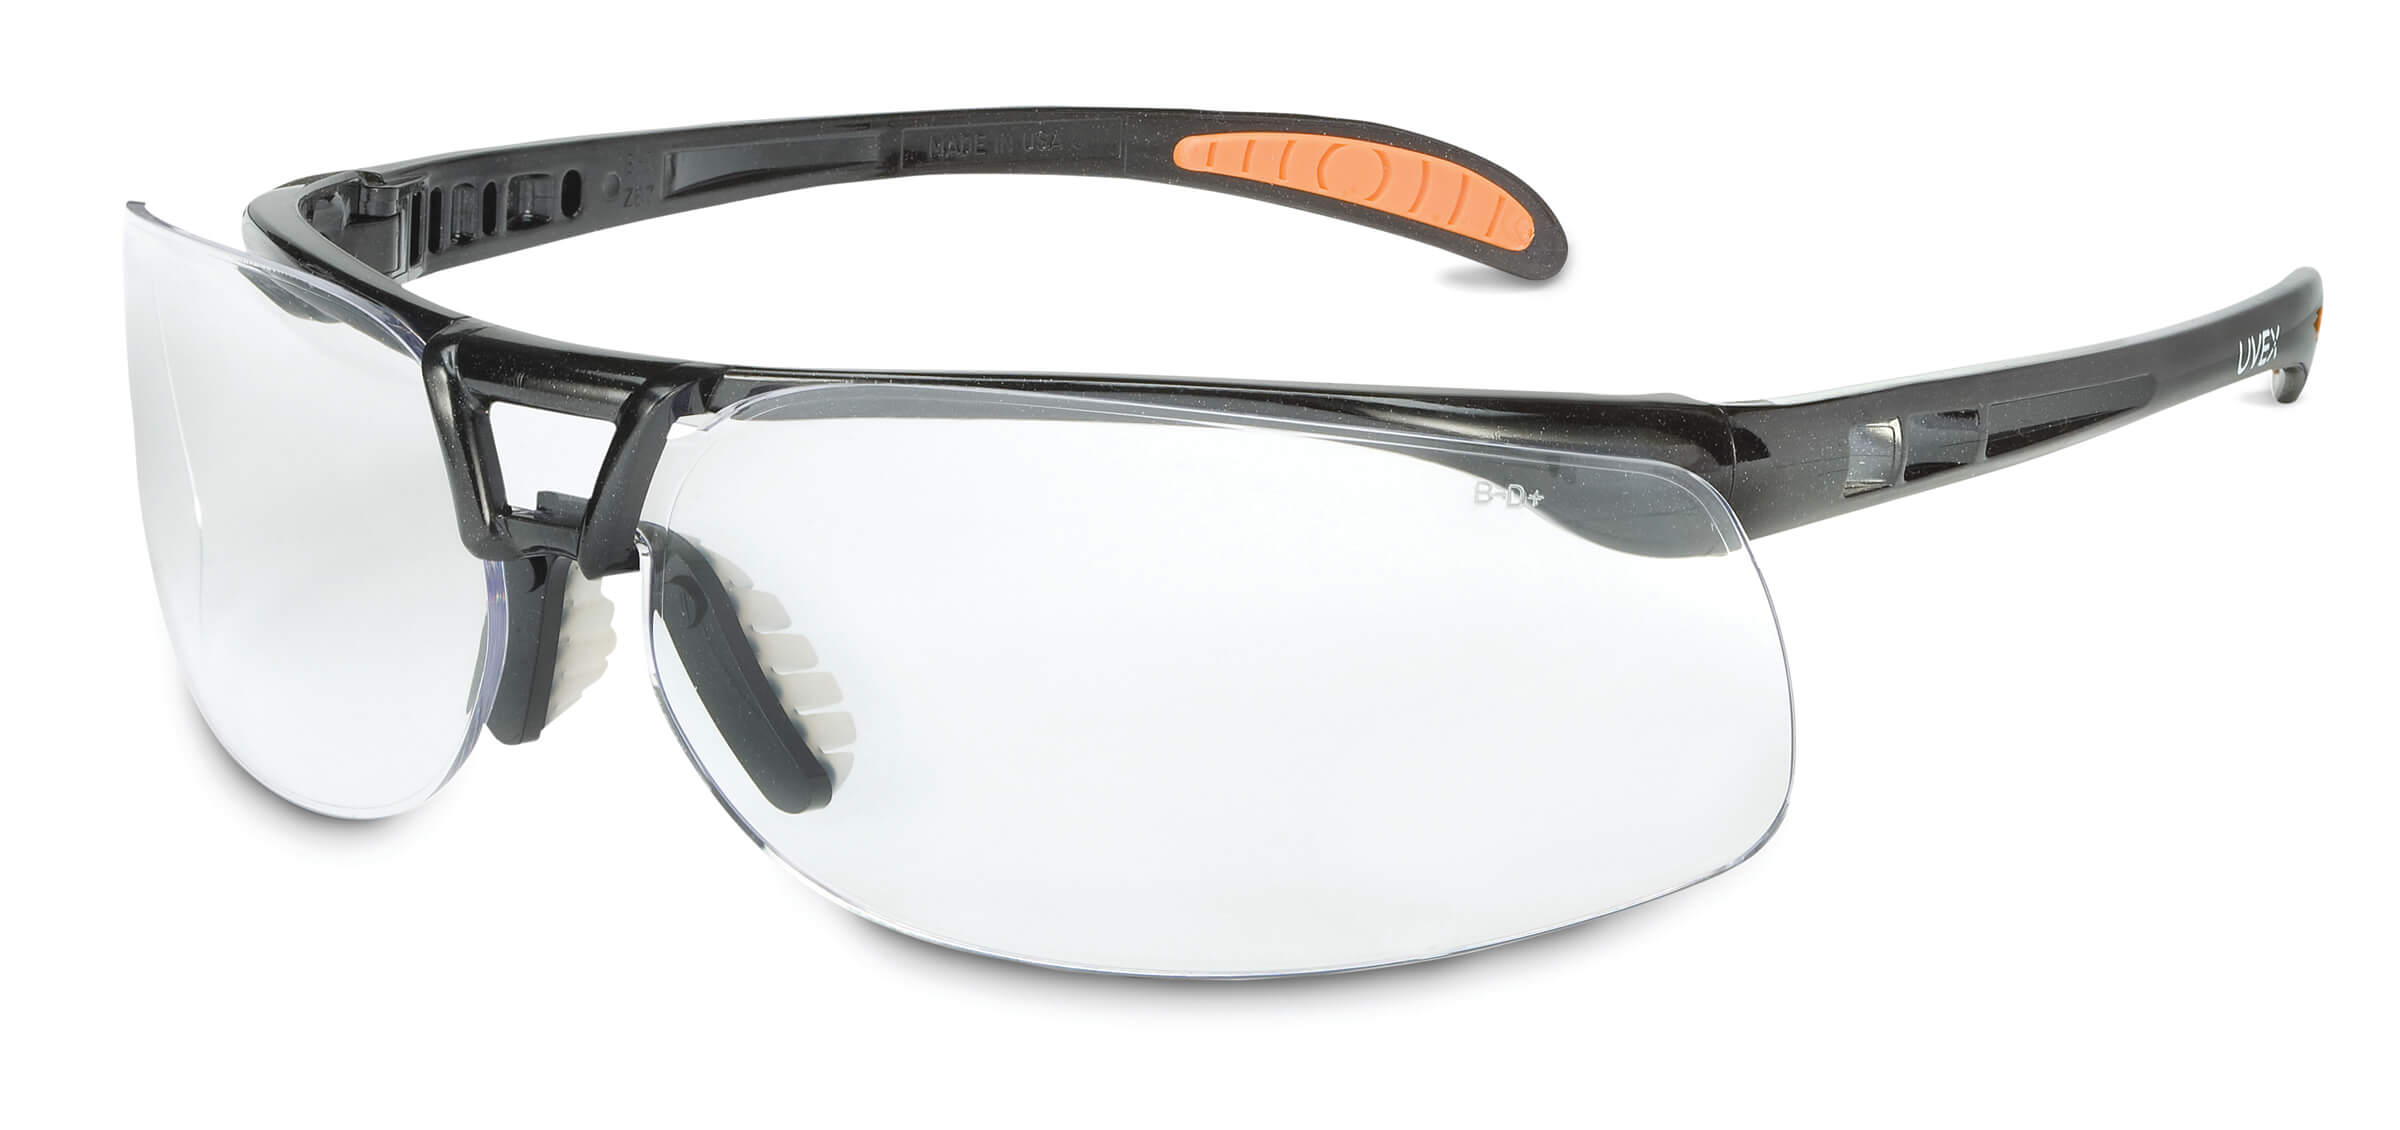 Safety Glasses - Uvex Protégé Black Frame flexible nose piec